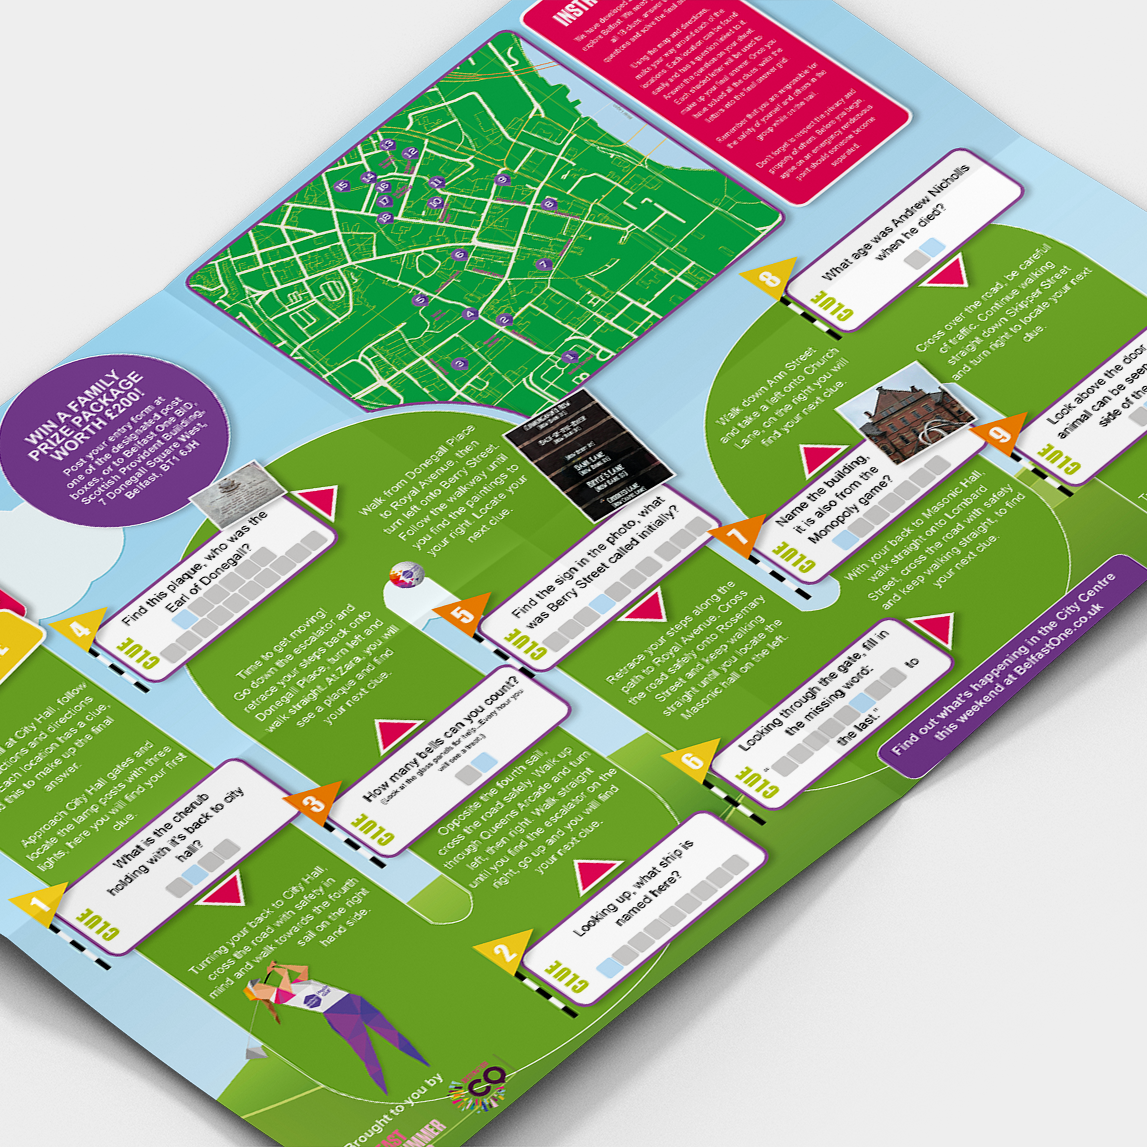 Gamification of Belfast City Centre Booklet